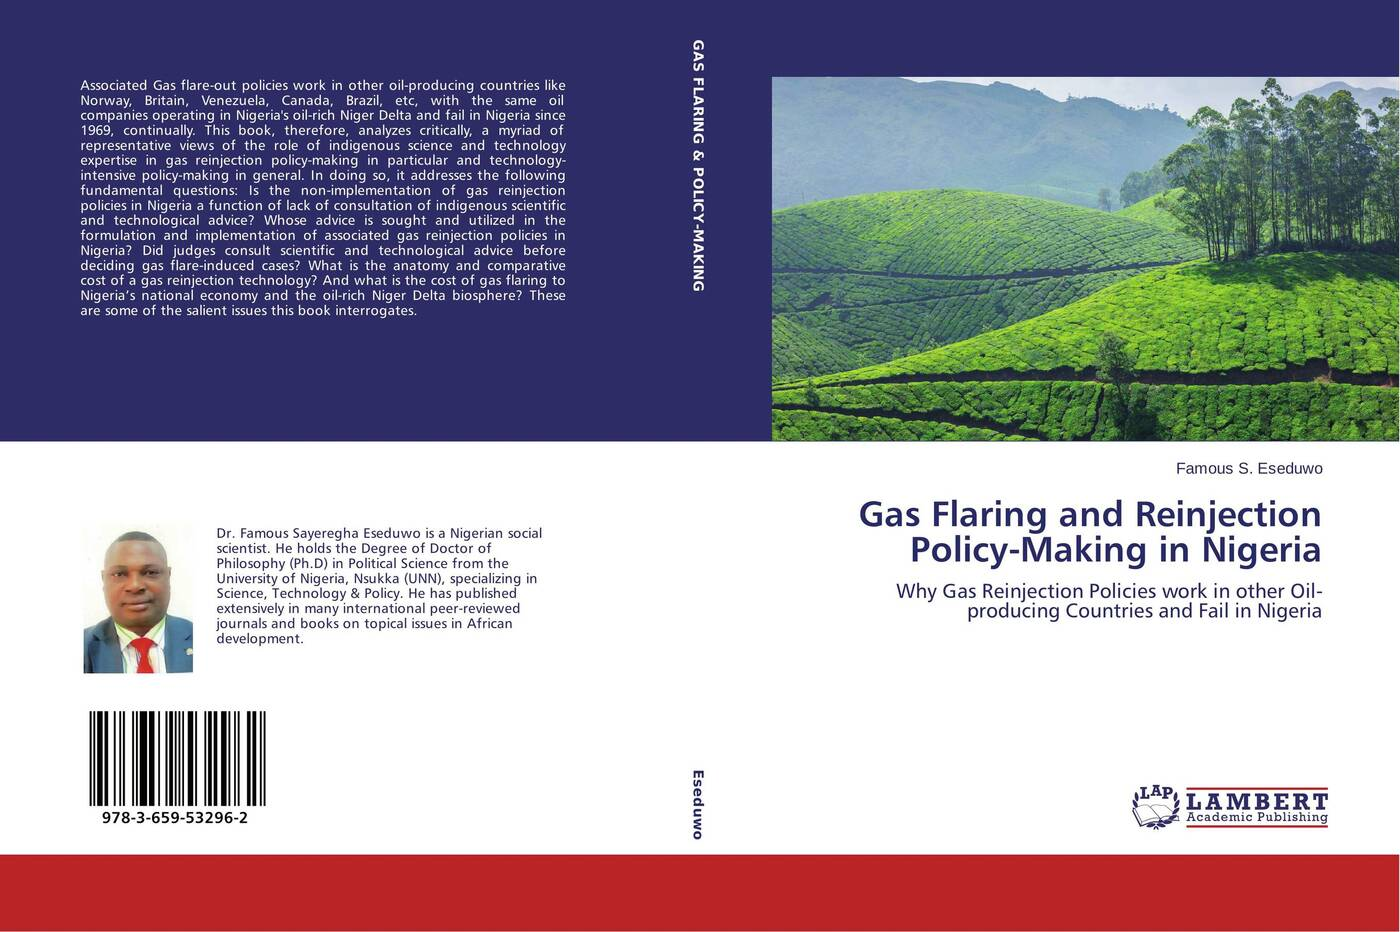 Famous S. Eseduwo Gas Flaring and Reinjection Policy-Making in Nigeria ernest udalla public policy in nigeria s fourth republic 1999 2010